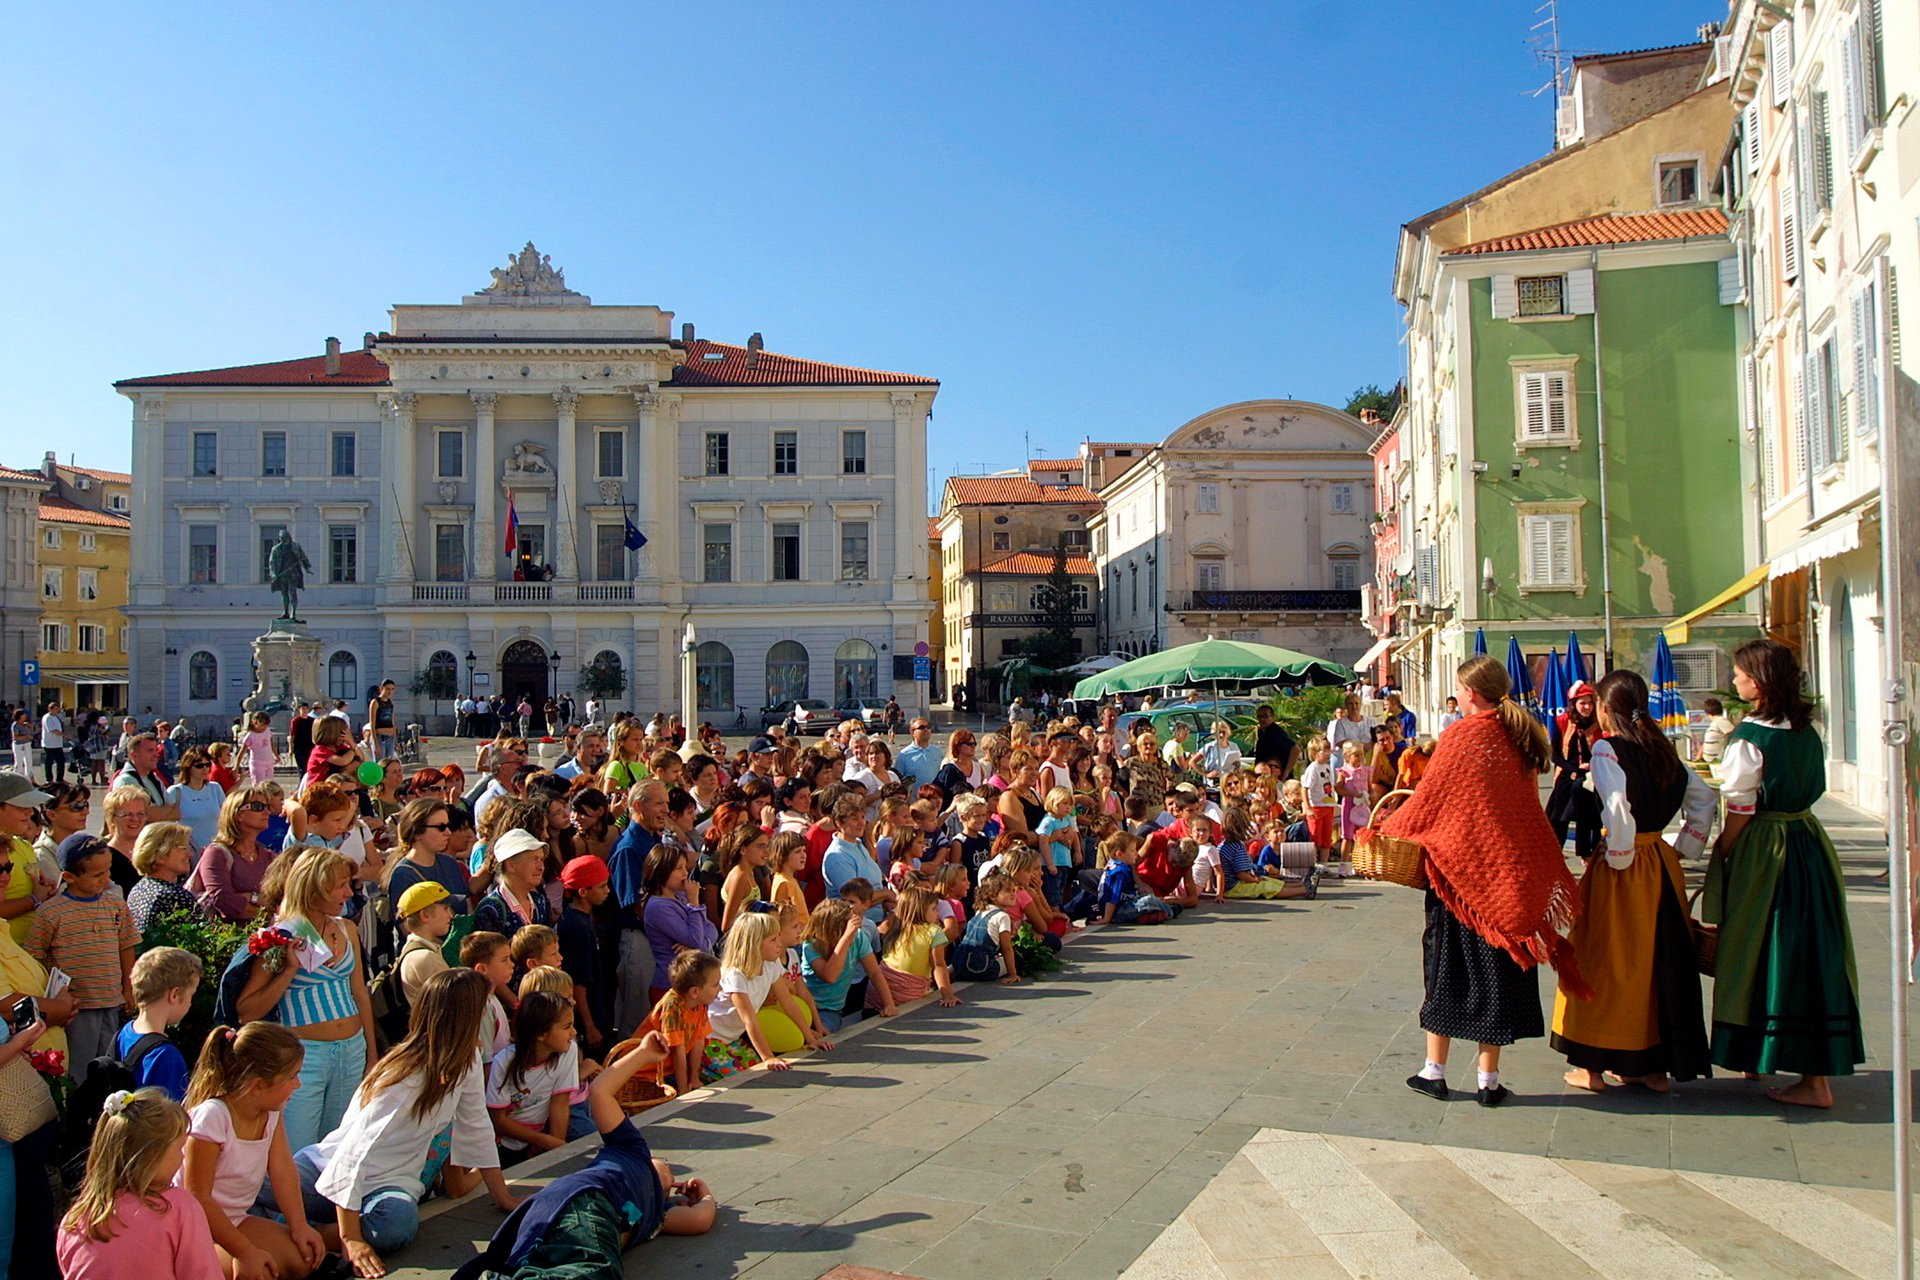 Saltworkers' Festival in St. George's Day, Piran 2020